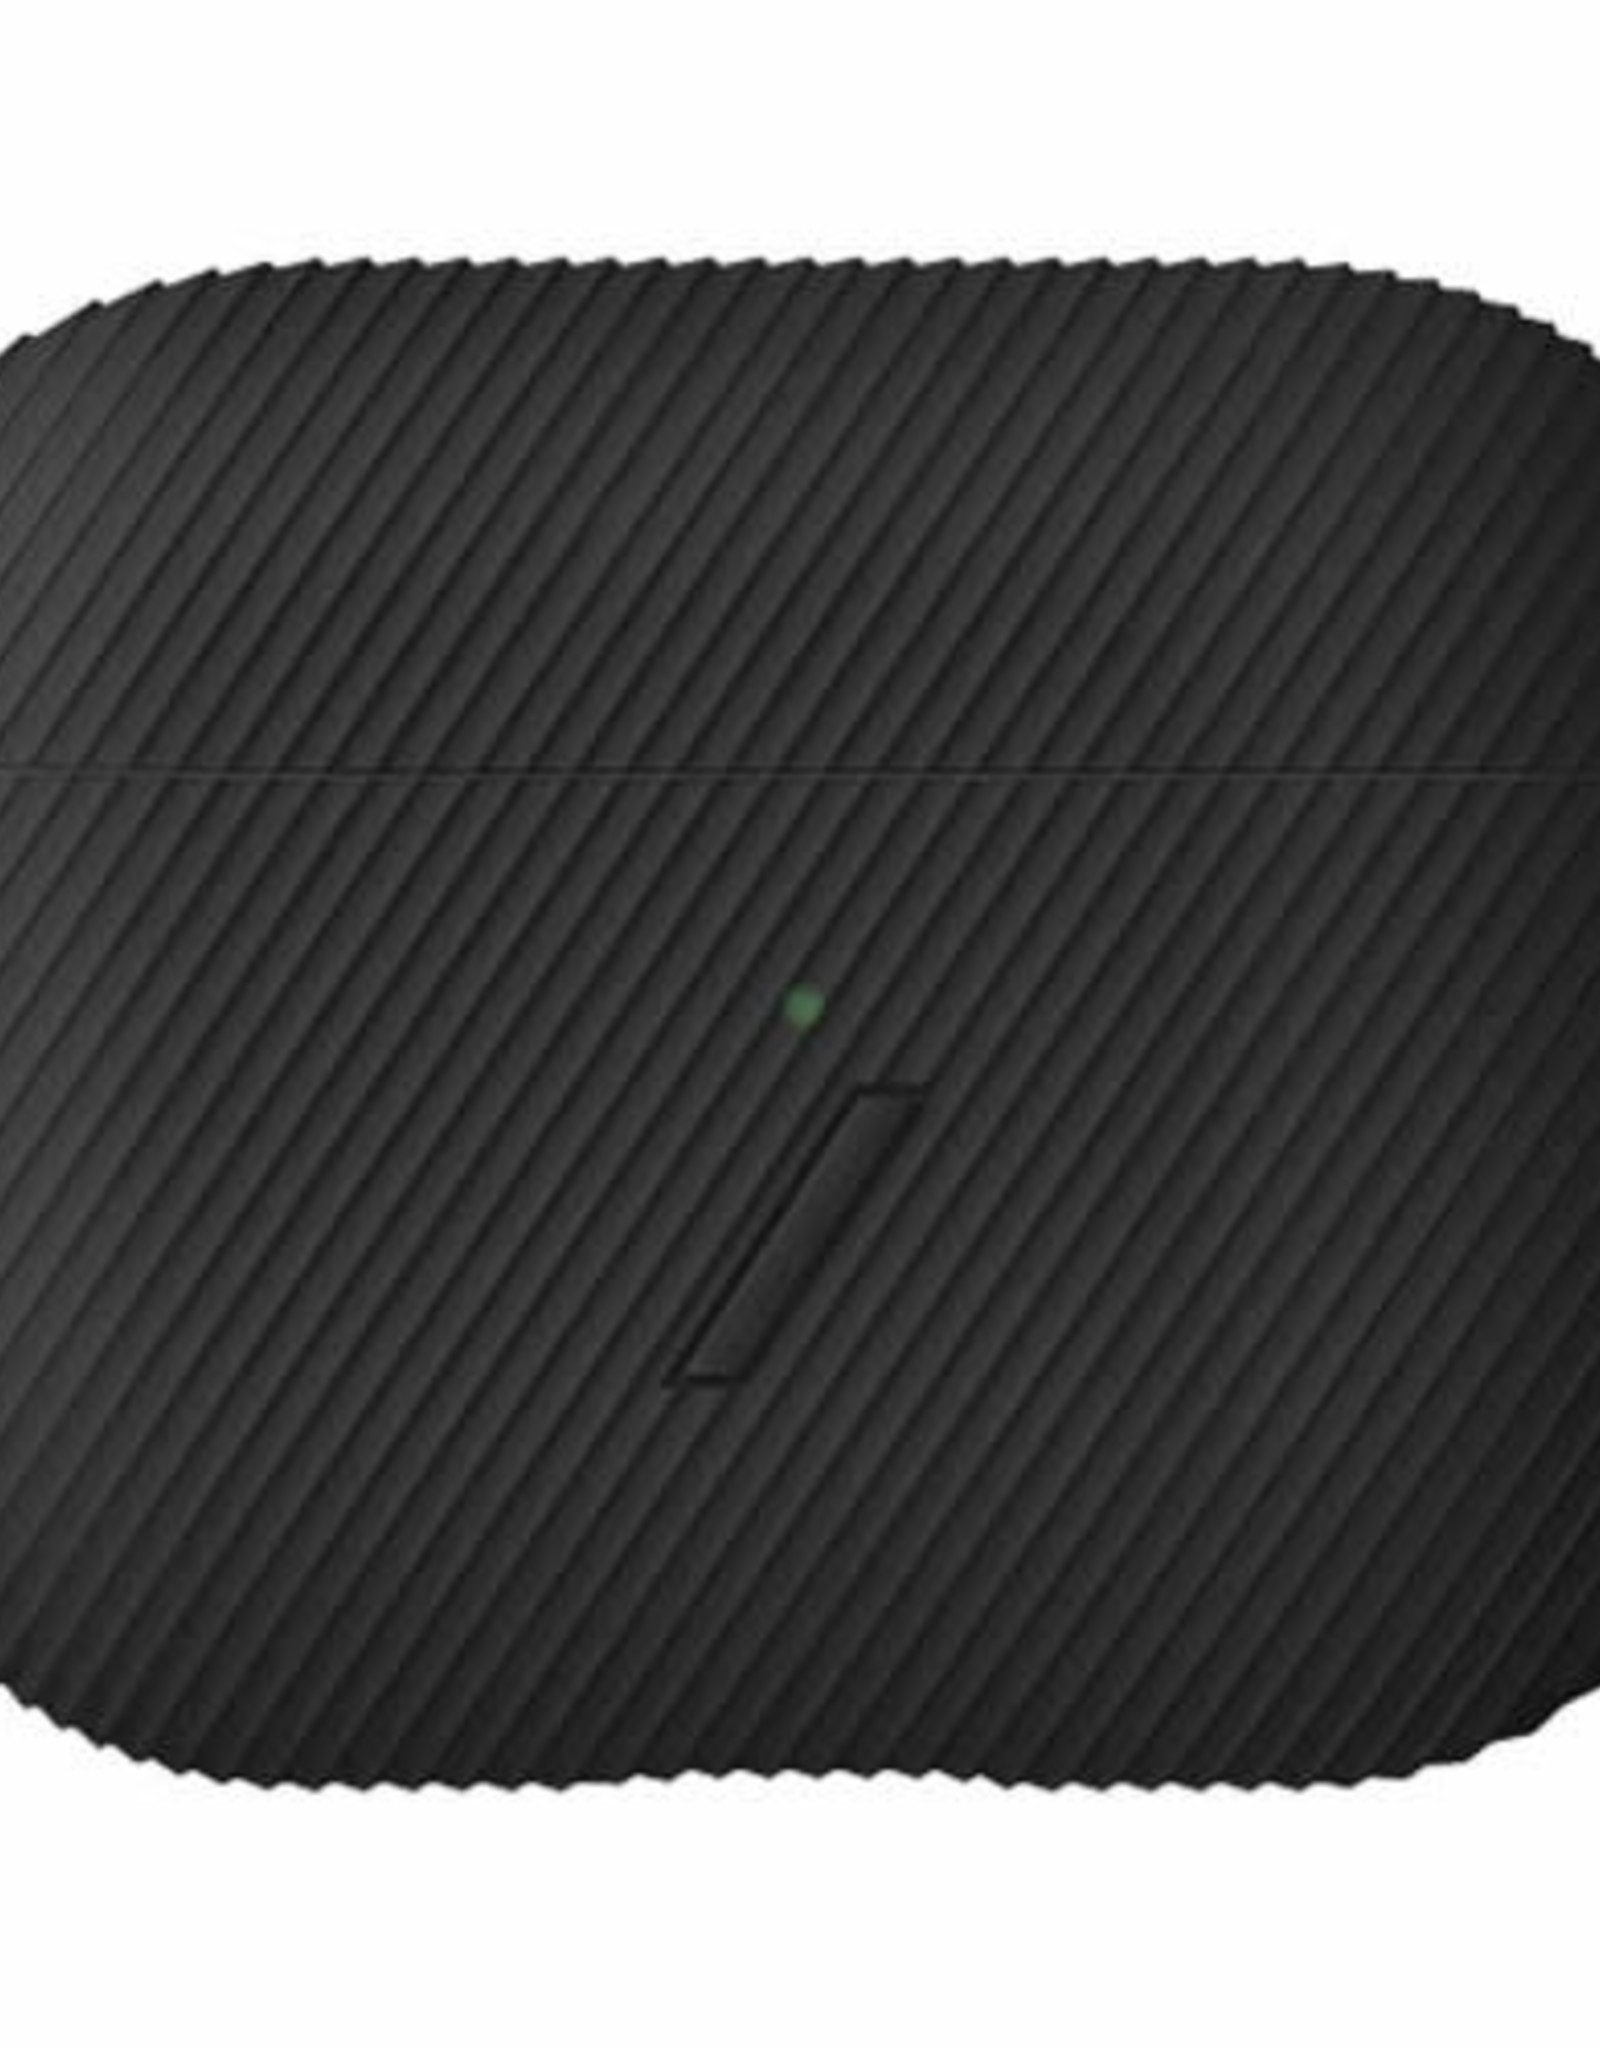 Native Union Native Union | Airpods Pro Curve Case Black APPRO-CRVE-BLK